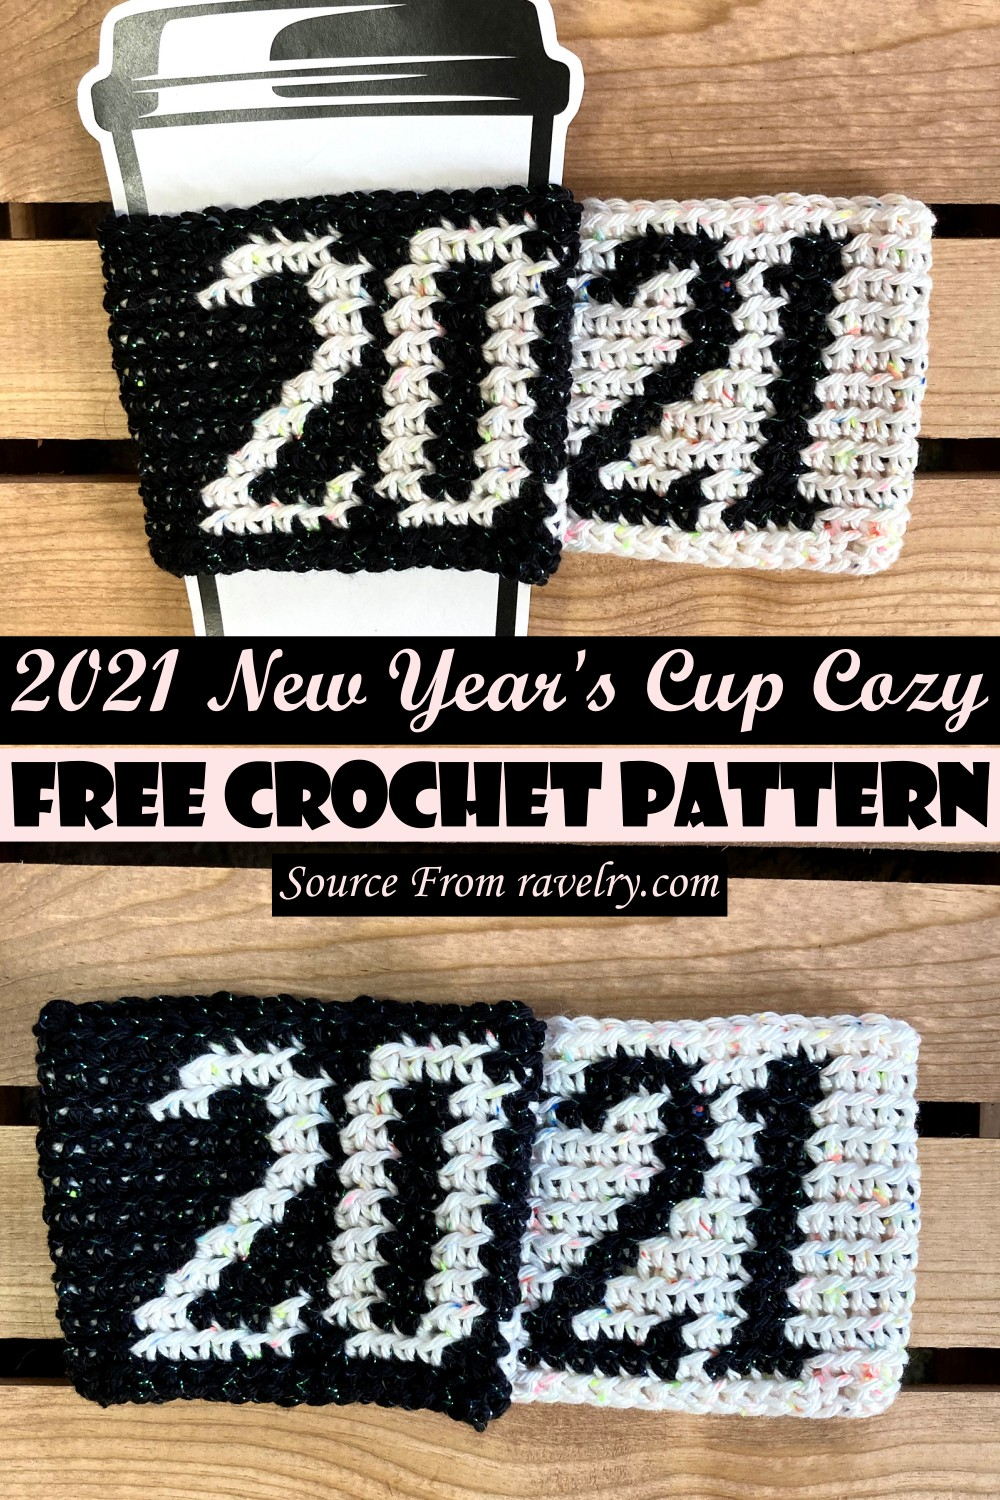 Free Crochet 2021 New Year's Cup Cozy Pattern